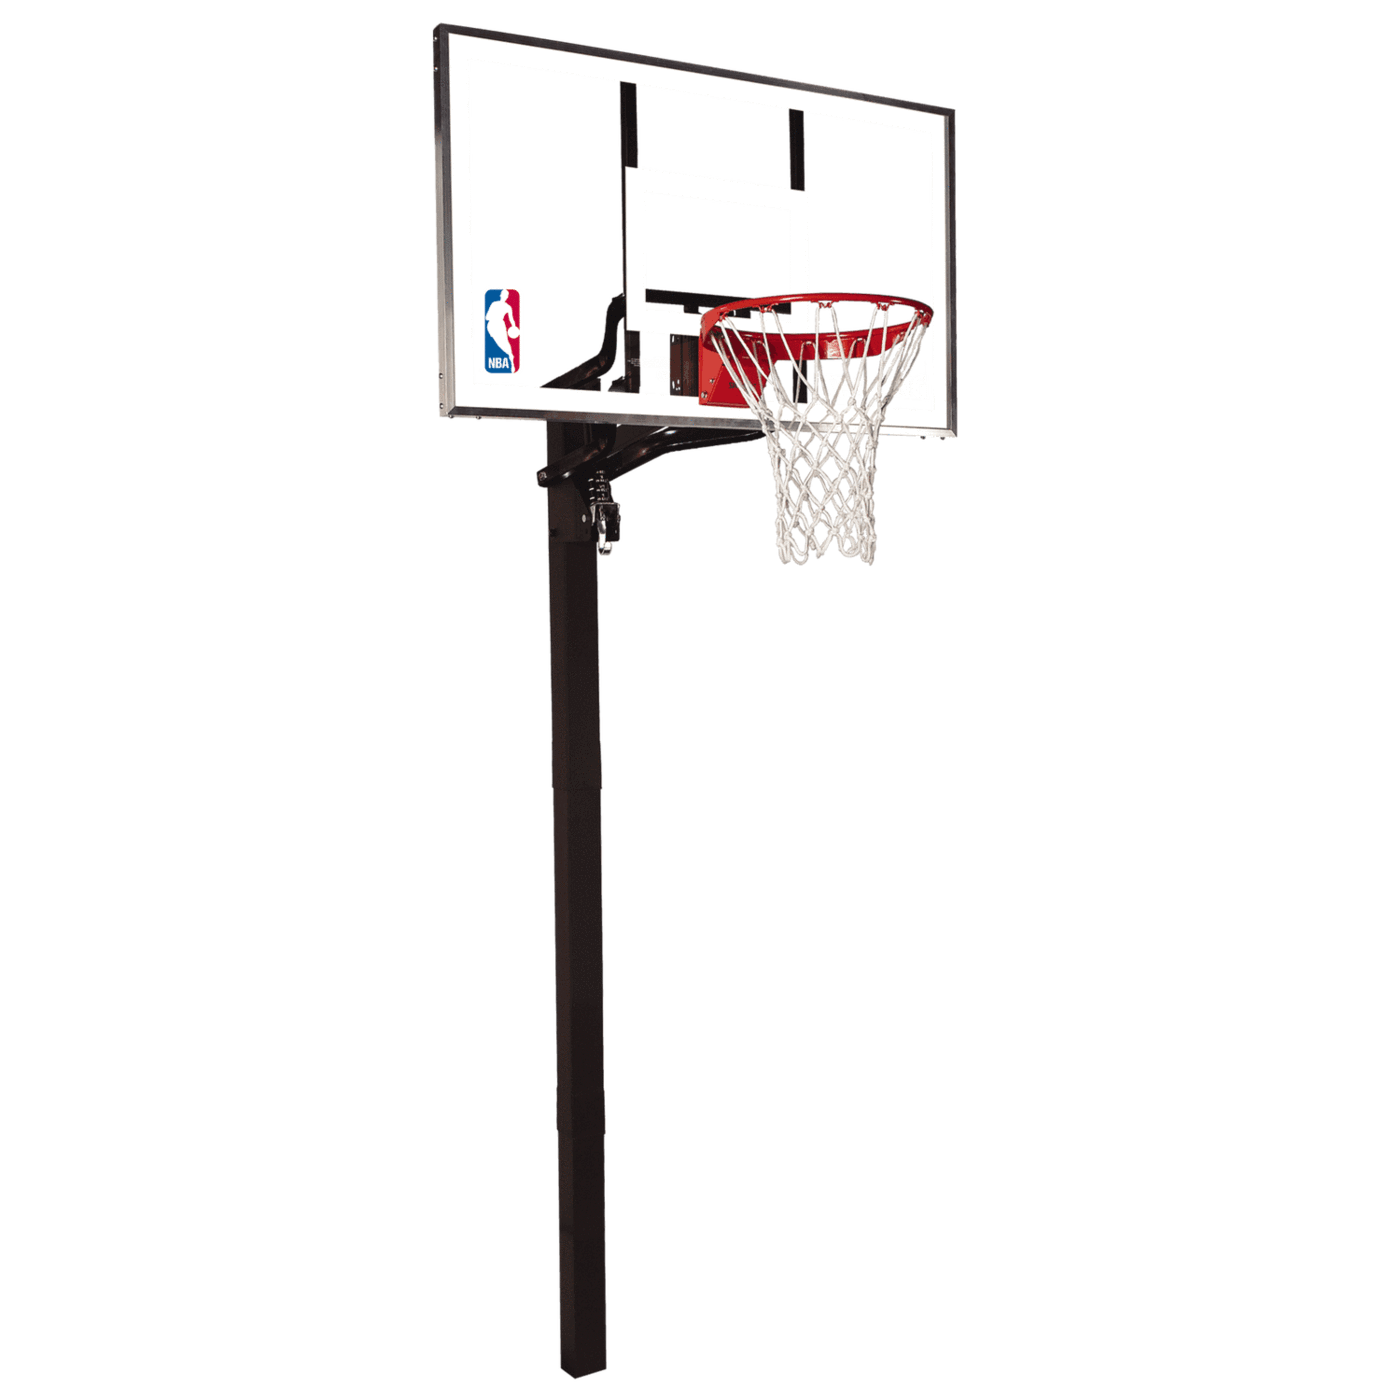 Basketball net png. Unique sports spalding glass